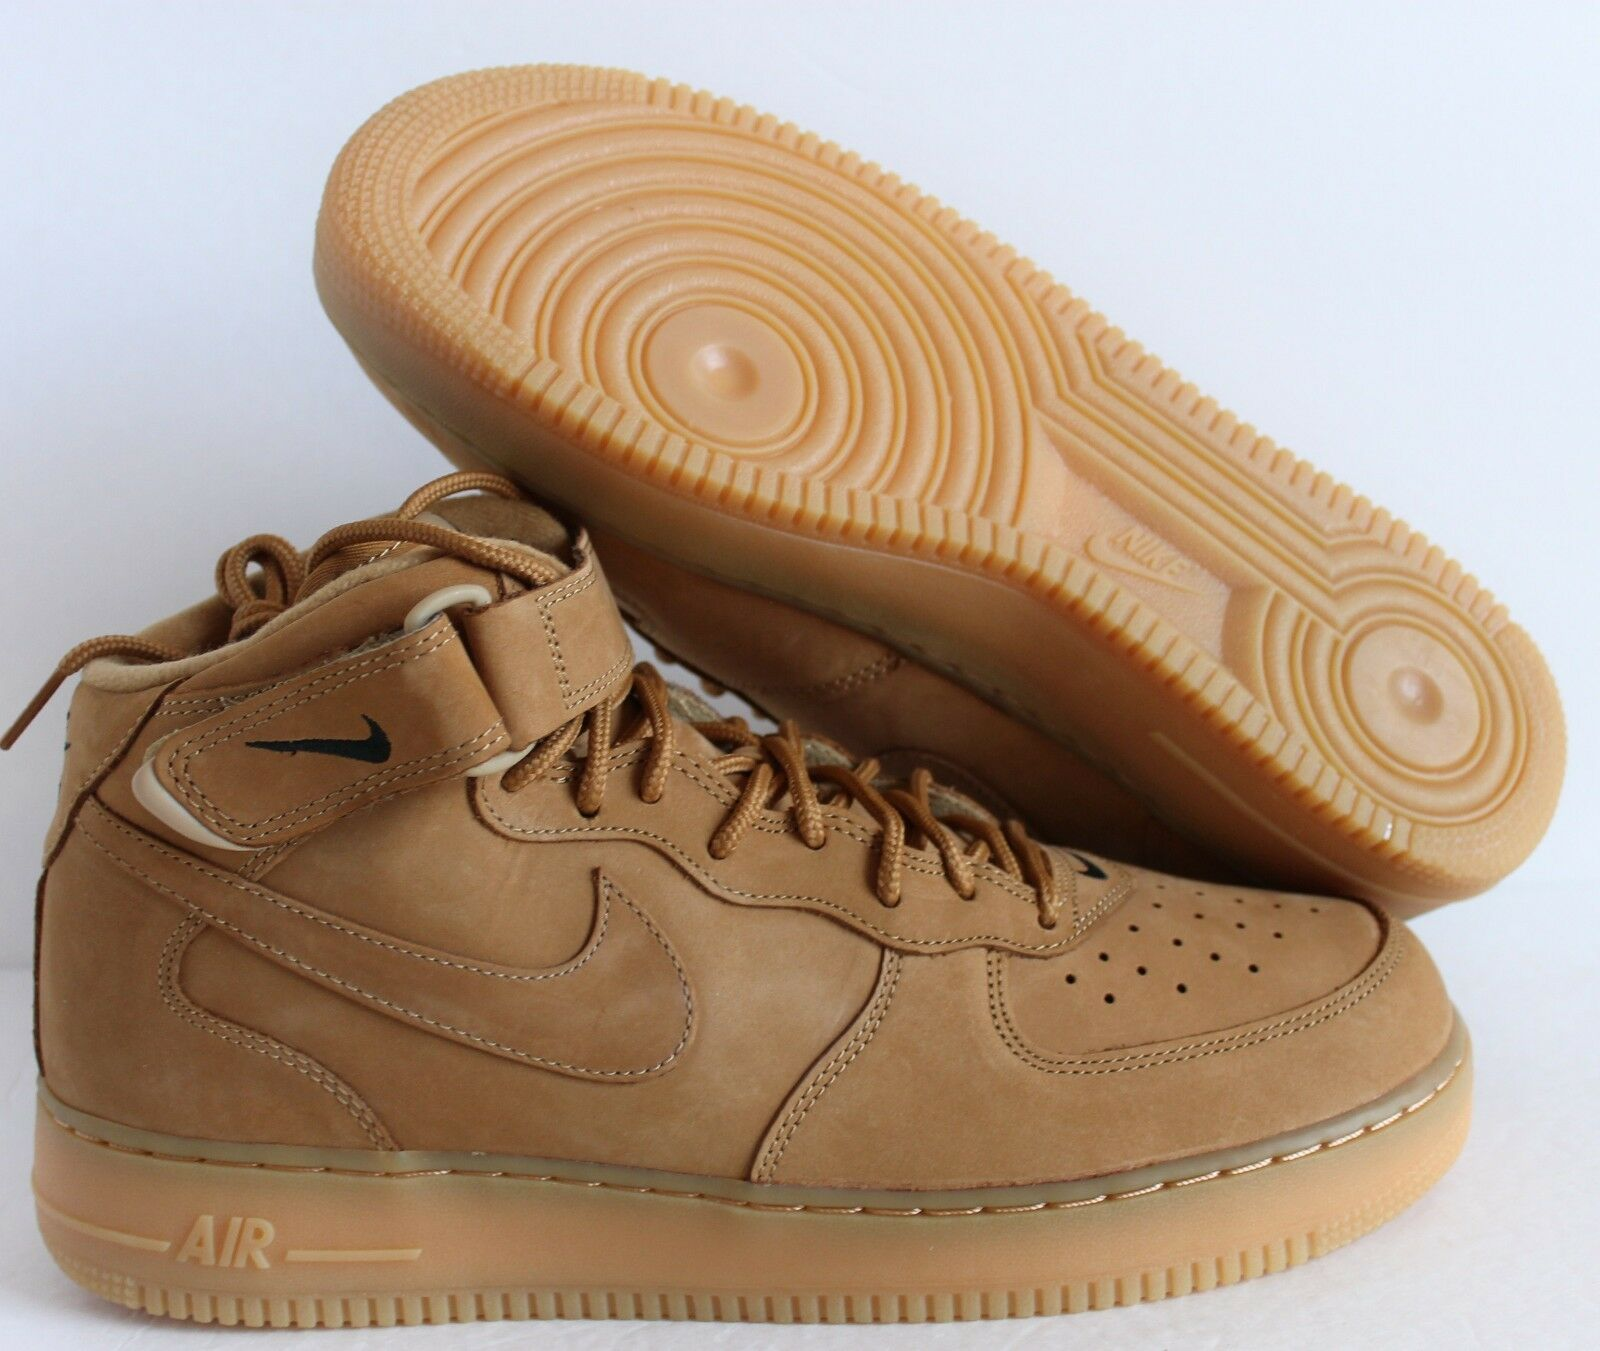 a95ca40cfa3 ... coupon nike air force 1 mid 07 pmr de premium qs flax wheat reducción  de pmr